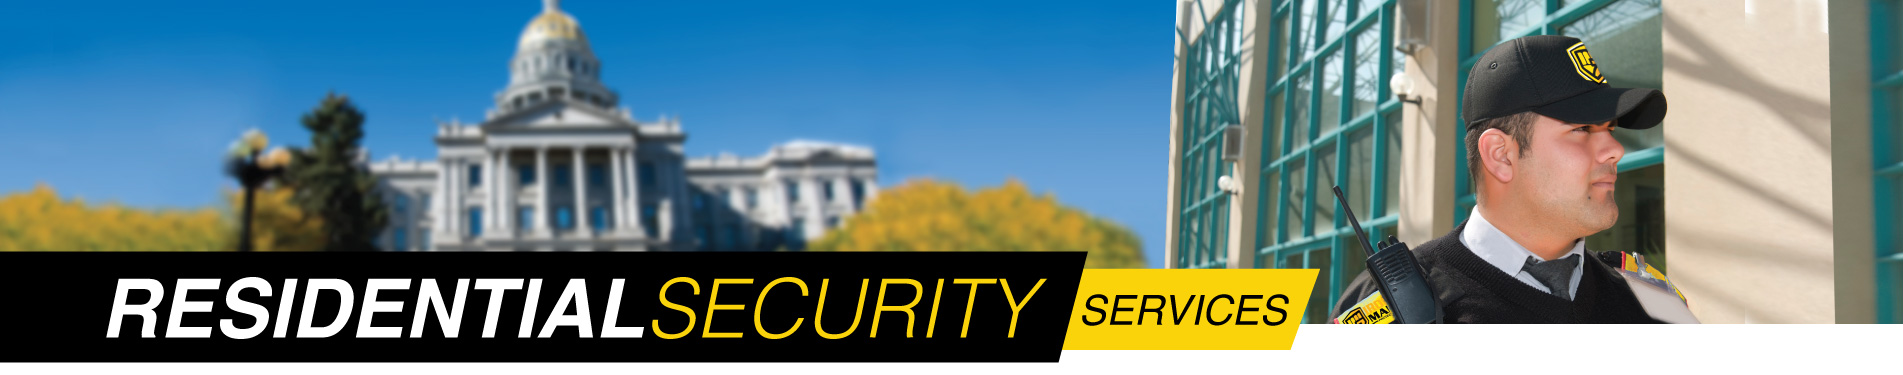 Houston area residential security services